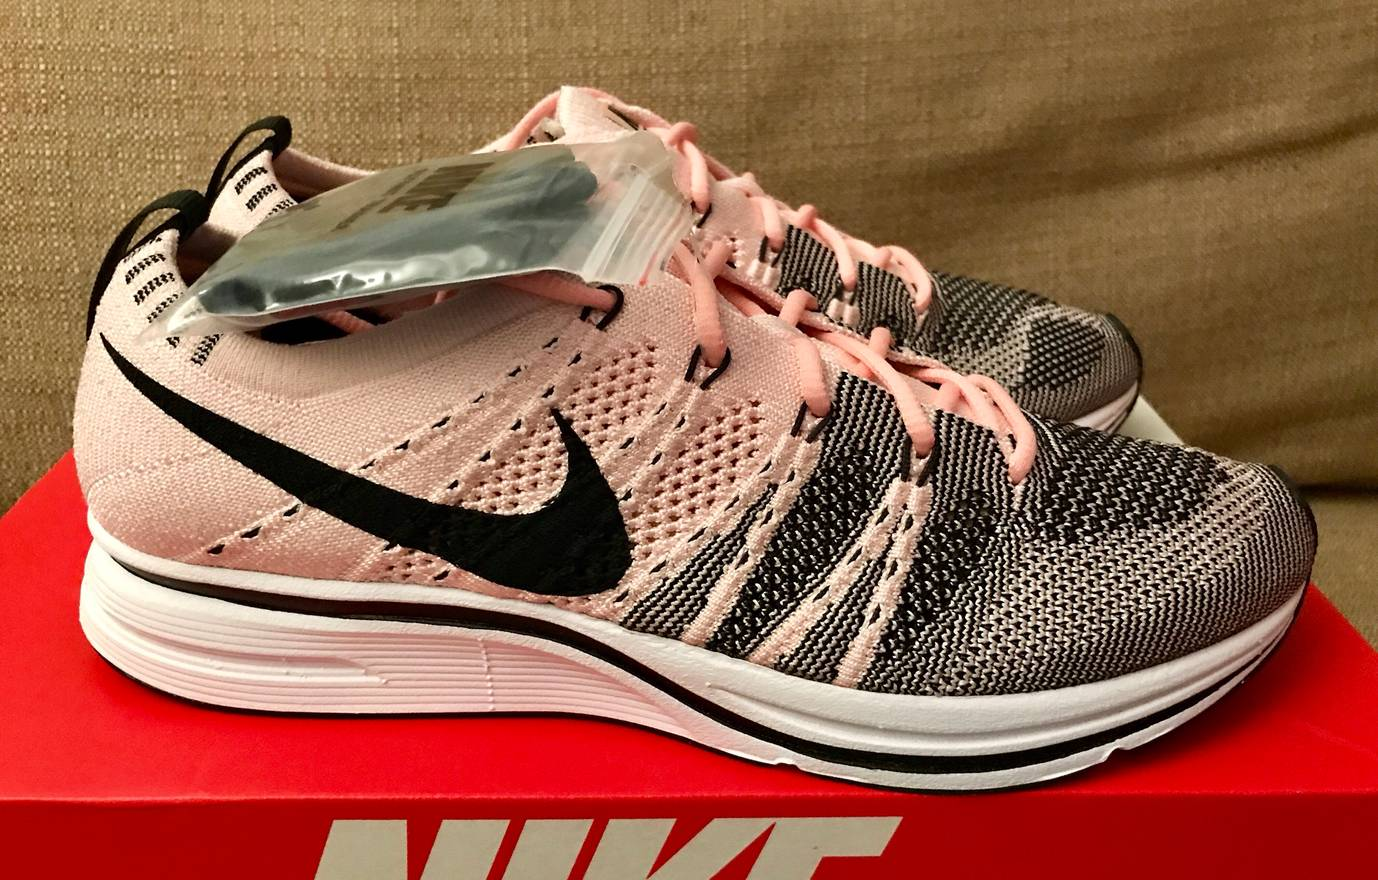 bd3905574d1a ... real nike 2017 nike flyknit trainer sunset tint black white size us 7  eu 31c4f 3806d